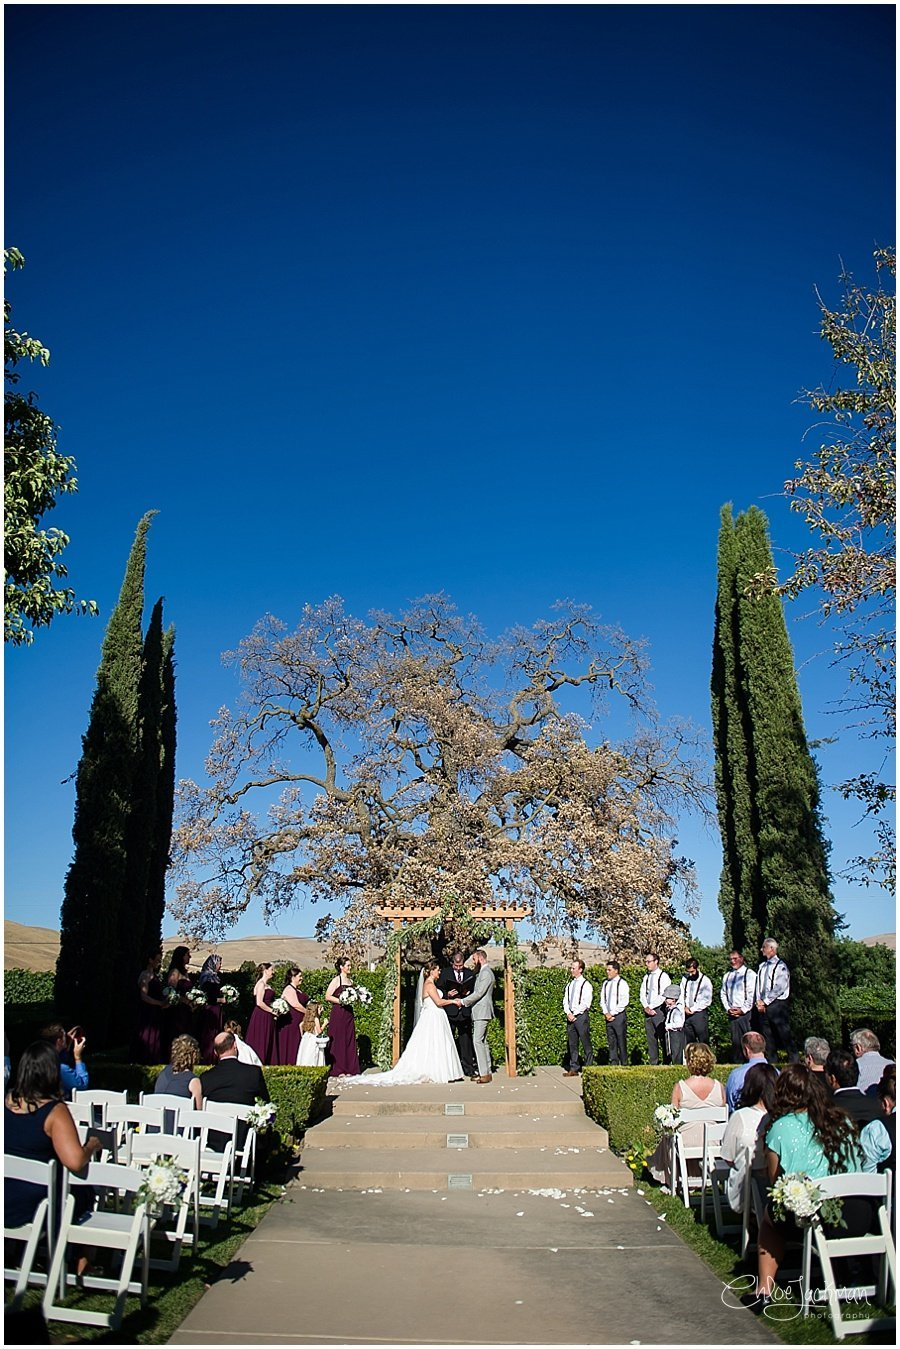 bride and groom at the altar at their outdoor Garre Winery Wedding in Livermore